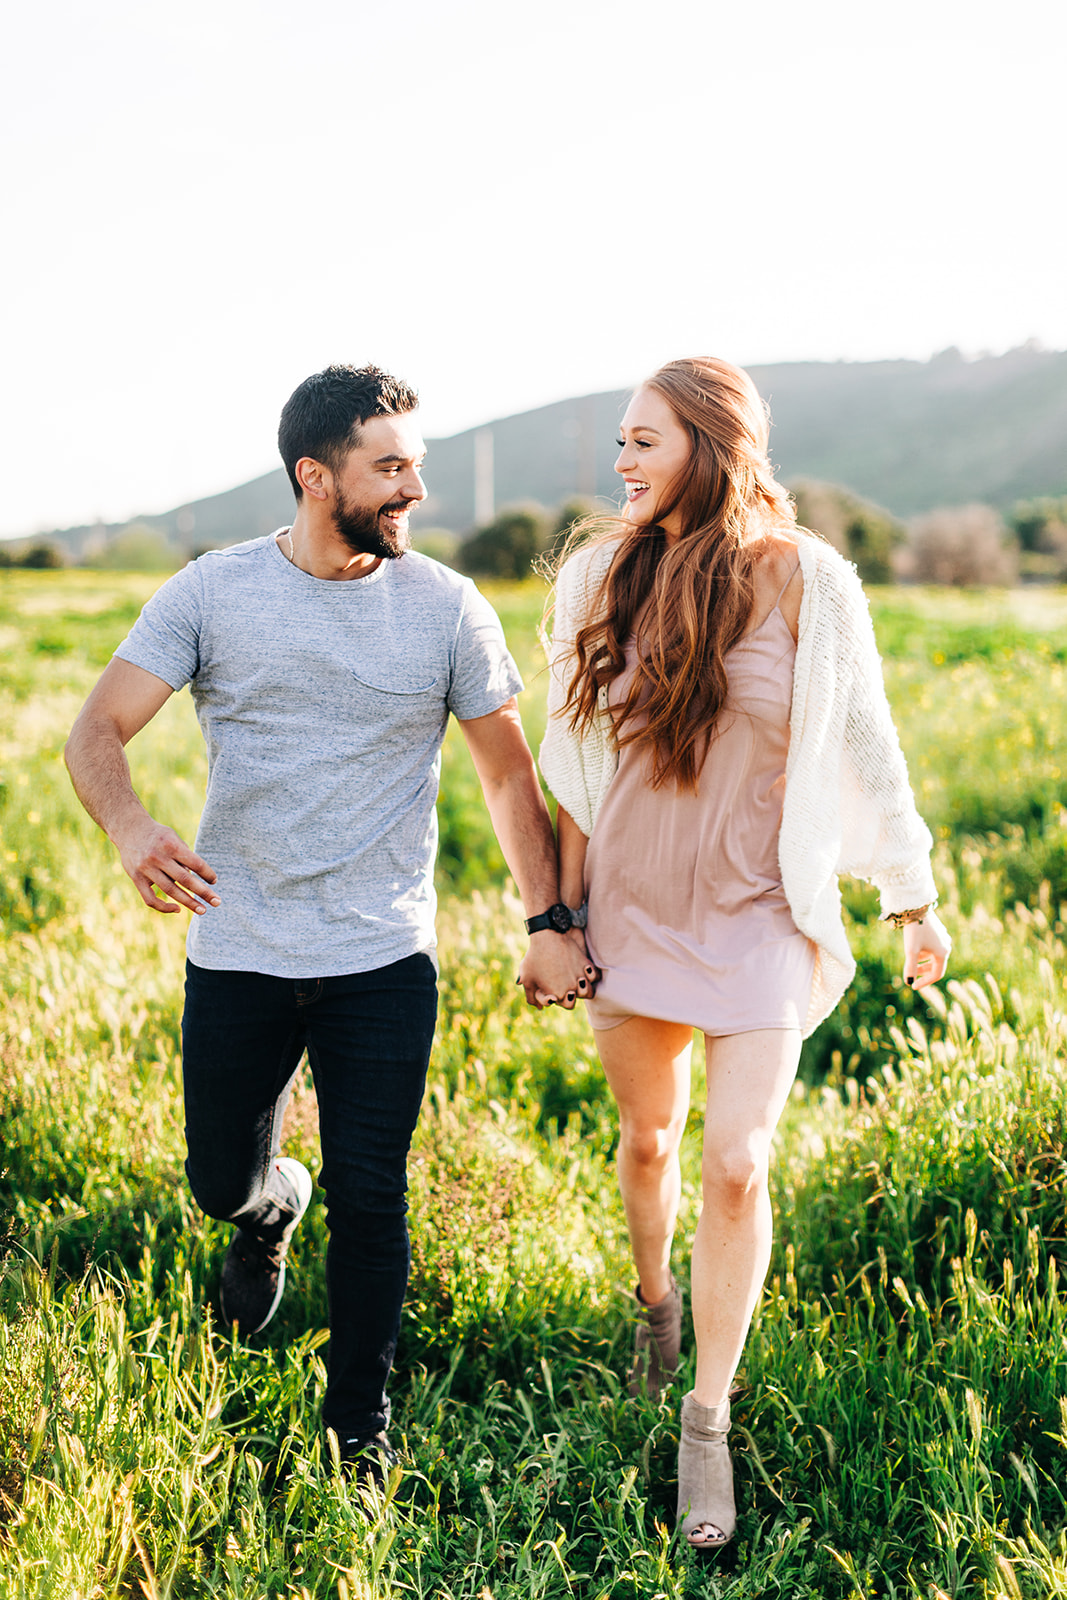 Katie-Yovin_Richard_Superbloom-Engagement-Photos_Clarisse-Rae_Southern-California-Wedding-Photographer-Orange-County-Engagement-Photos-23